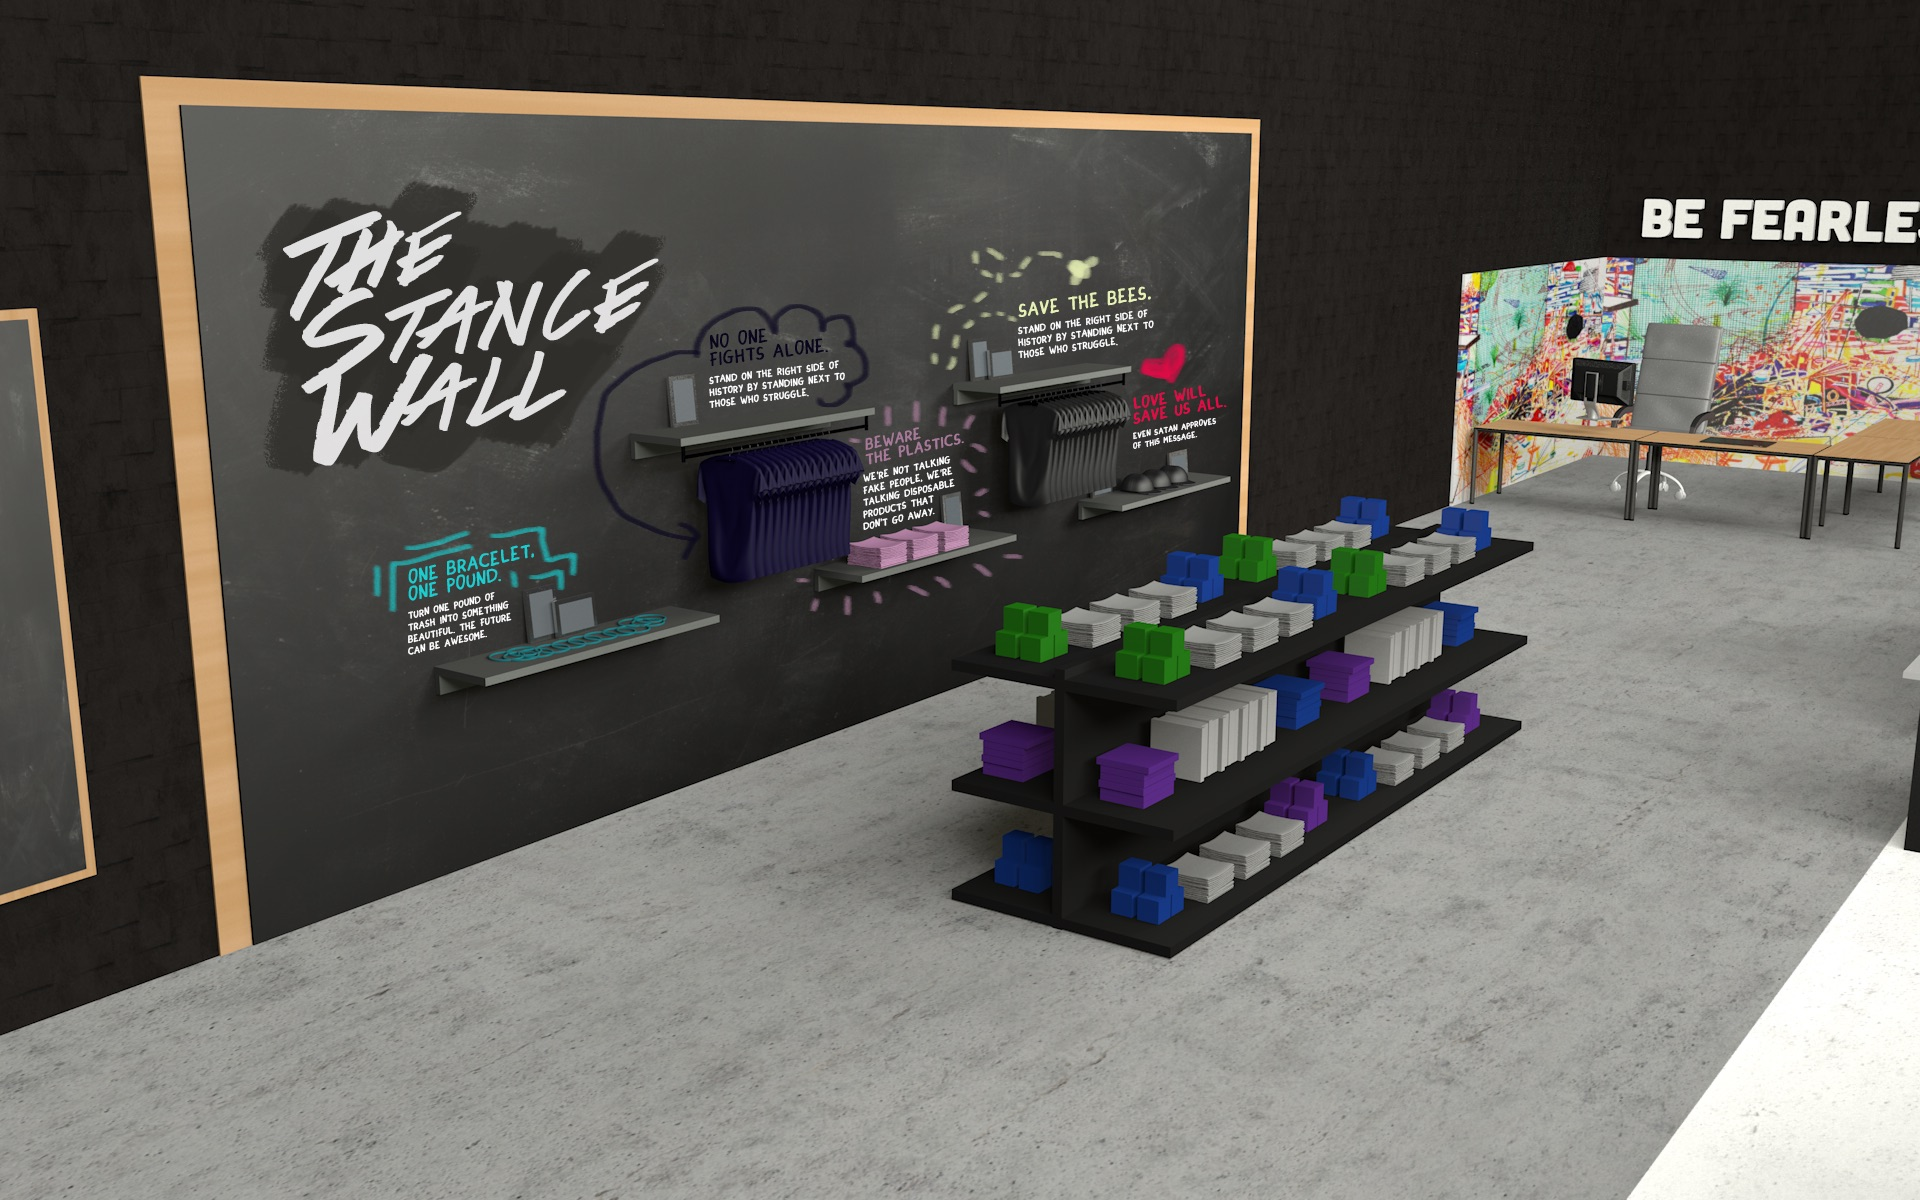 The Stance Wall displays products that benefit various causes, both local and national. Shoppers can read the story behind each product on the chalk surface and vote with their dollar.